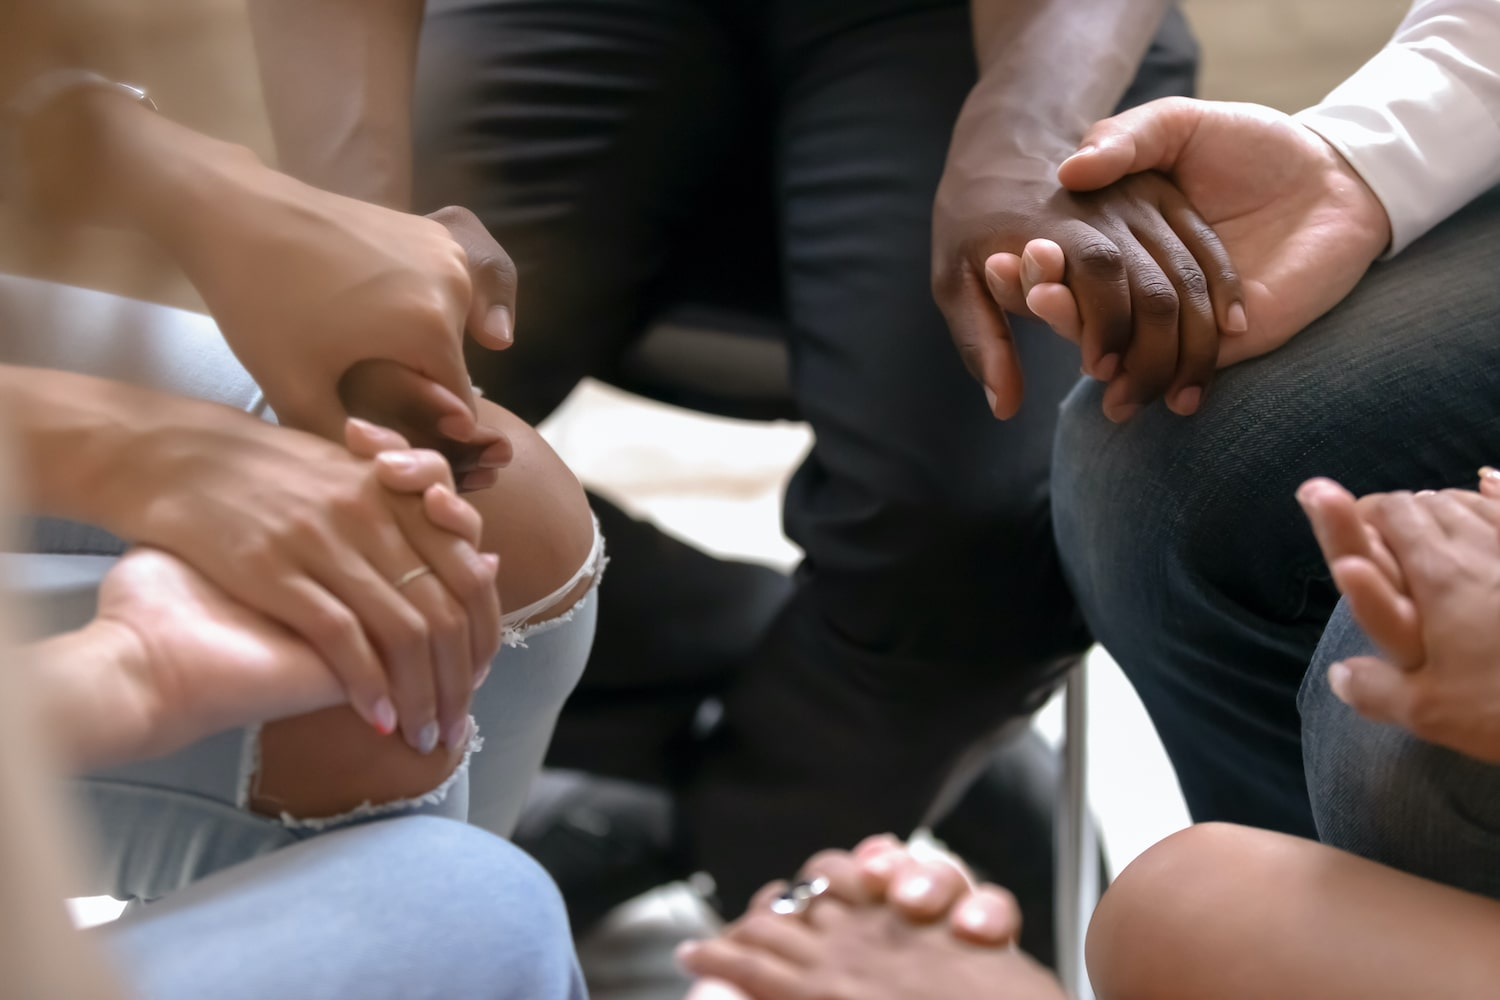 Group holding hands during recovery process for drug and alcohol addiction